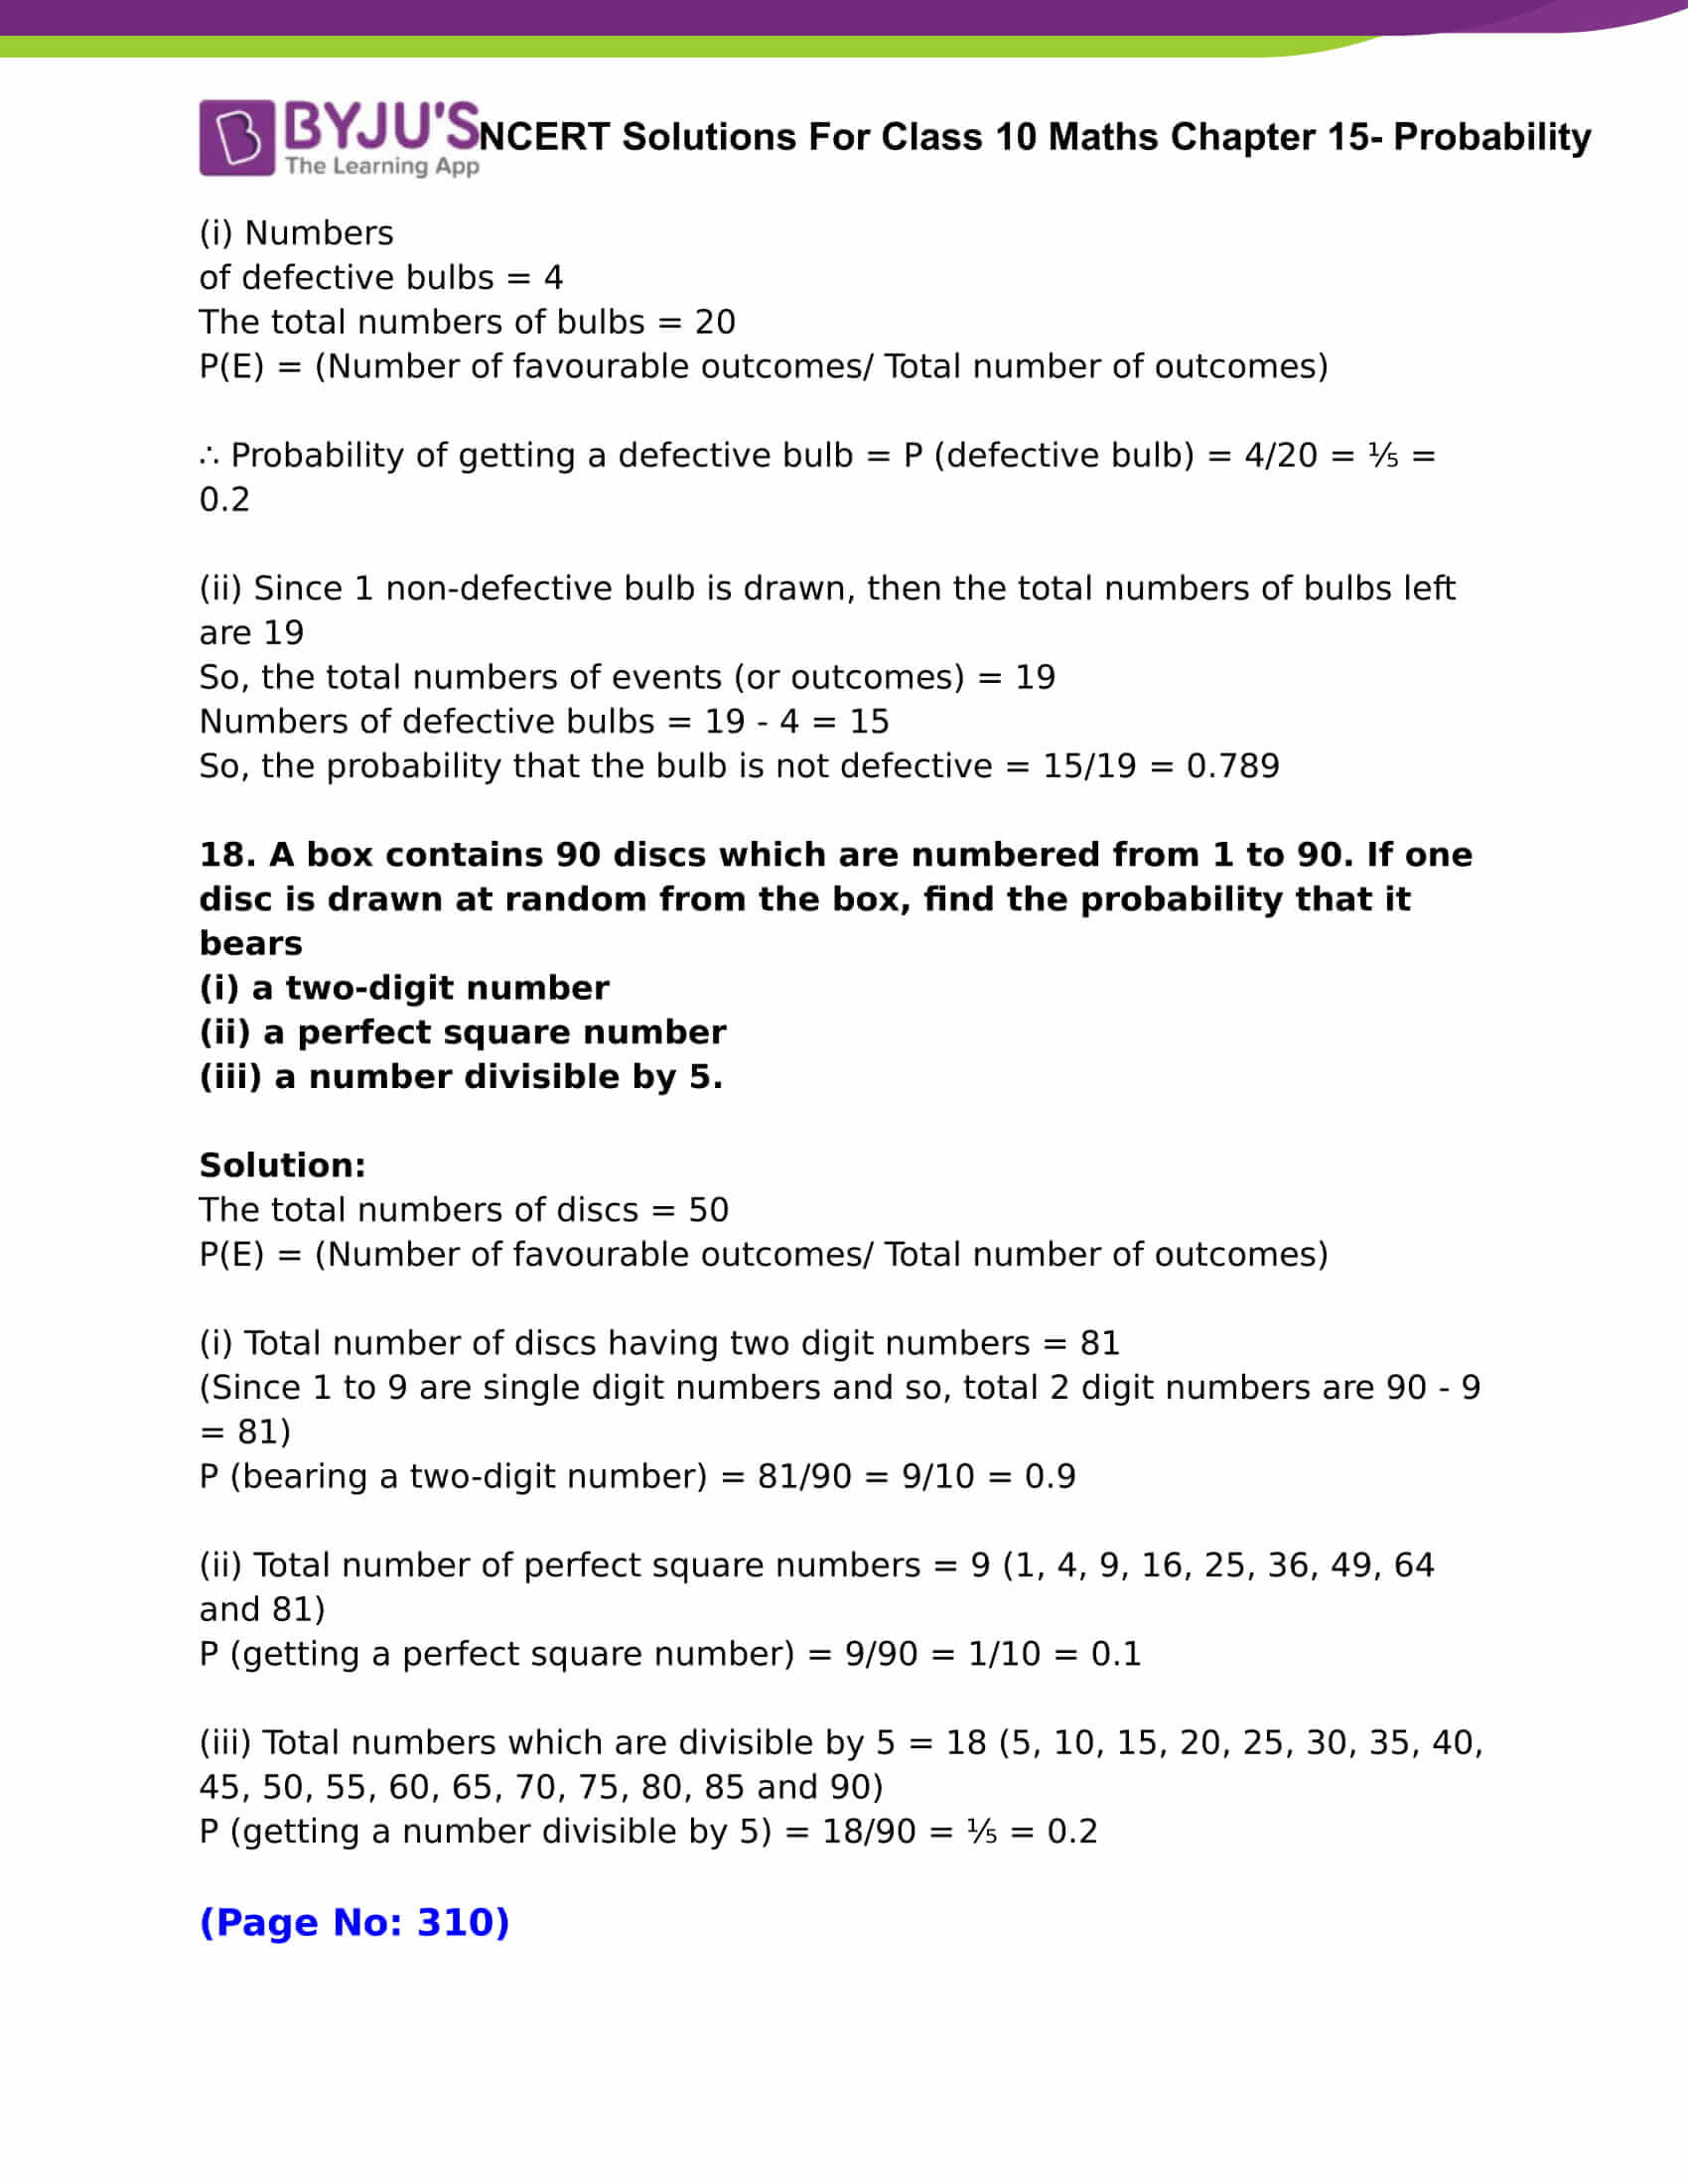 NCERT Solutions For Class 10 Maths Chapter 15 Probability Part 09